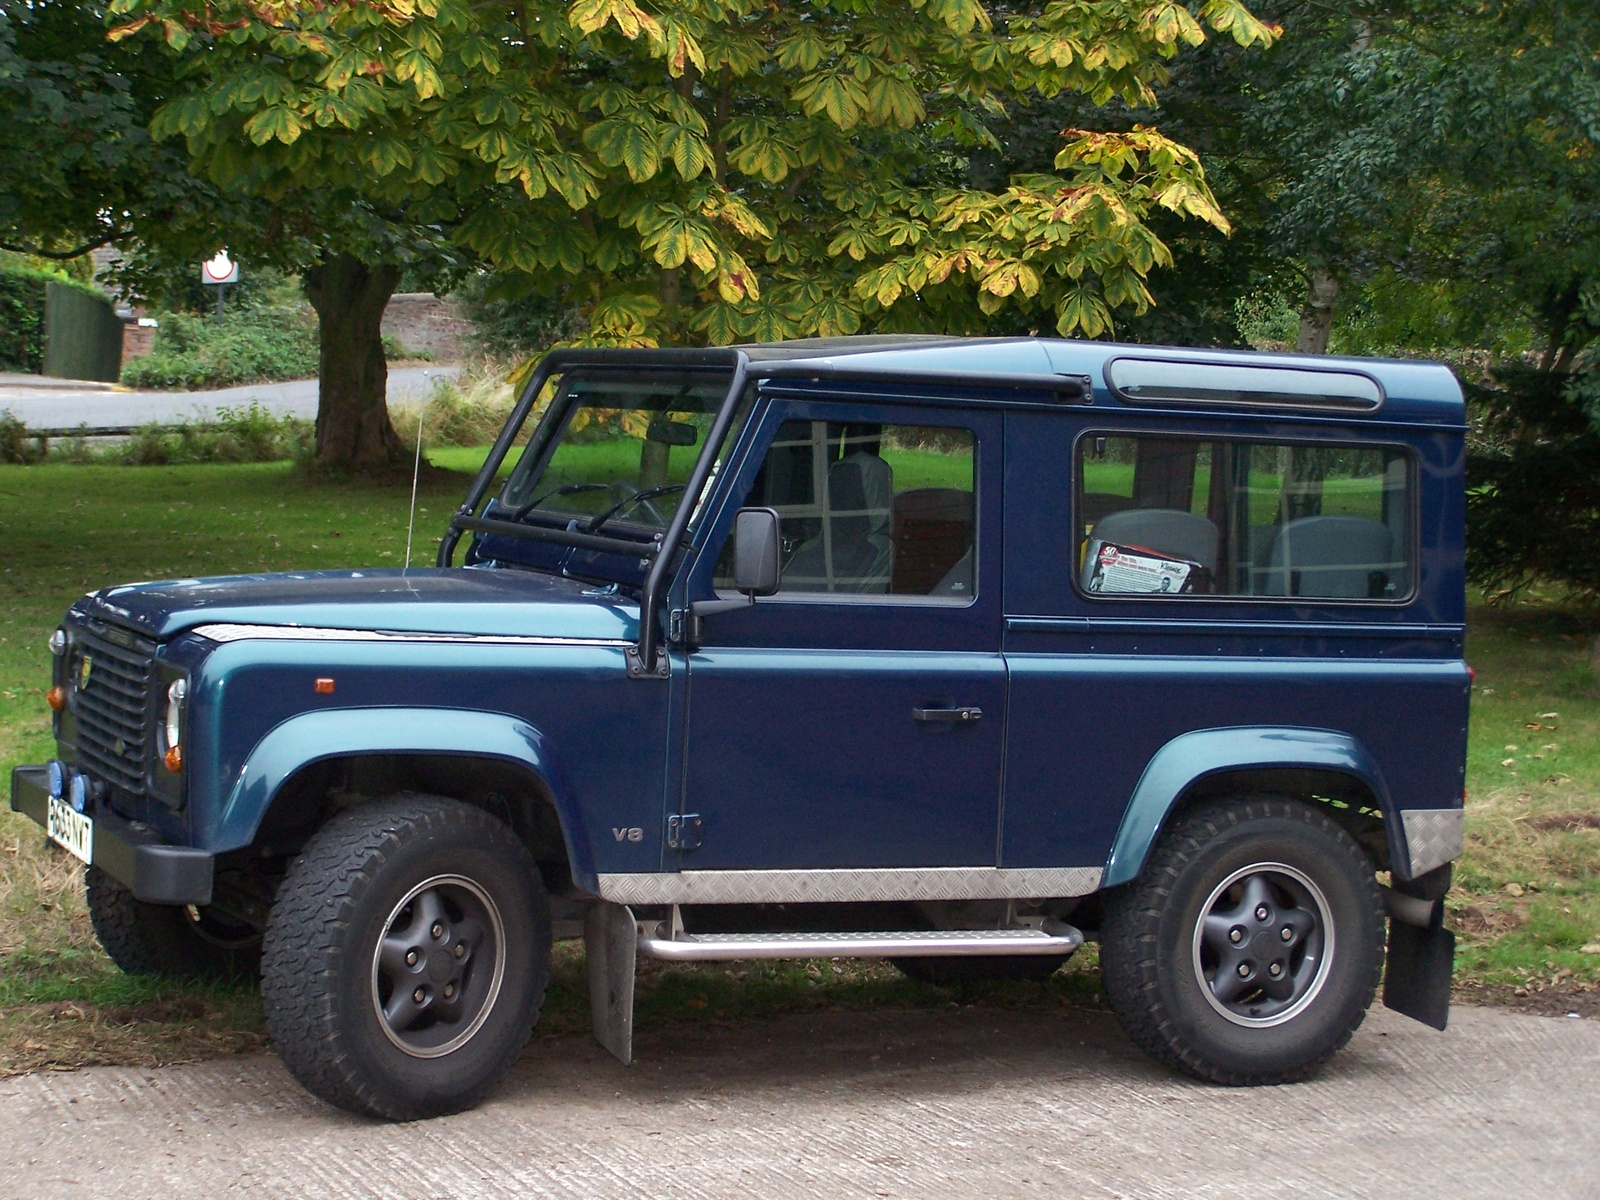 Who Owns Land Rover >> 1998 Land Rover Defender - Pictures - CarGurus